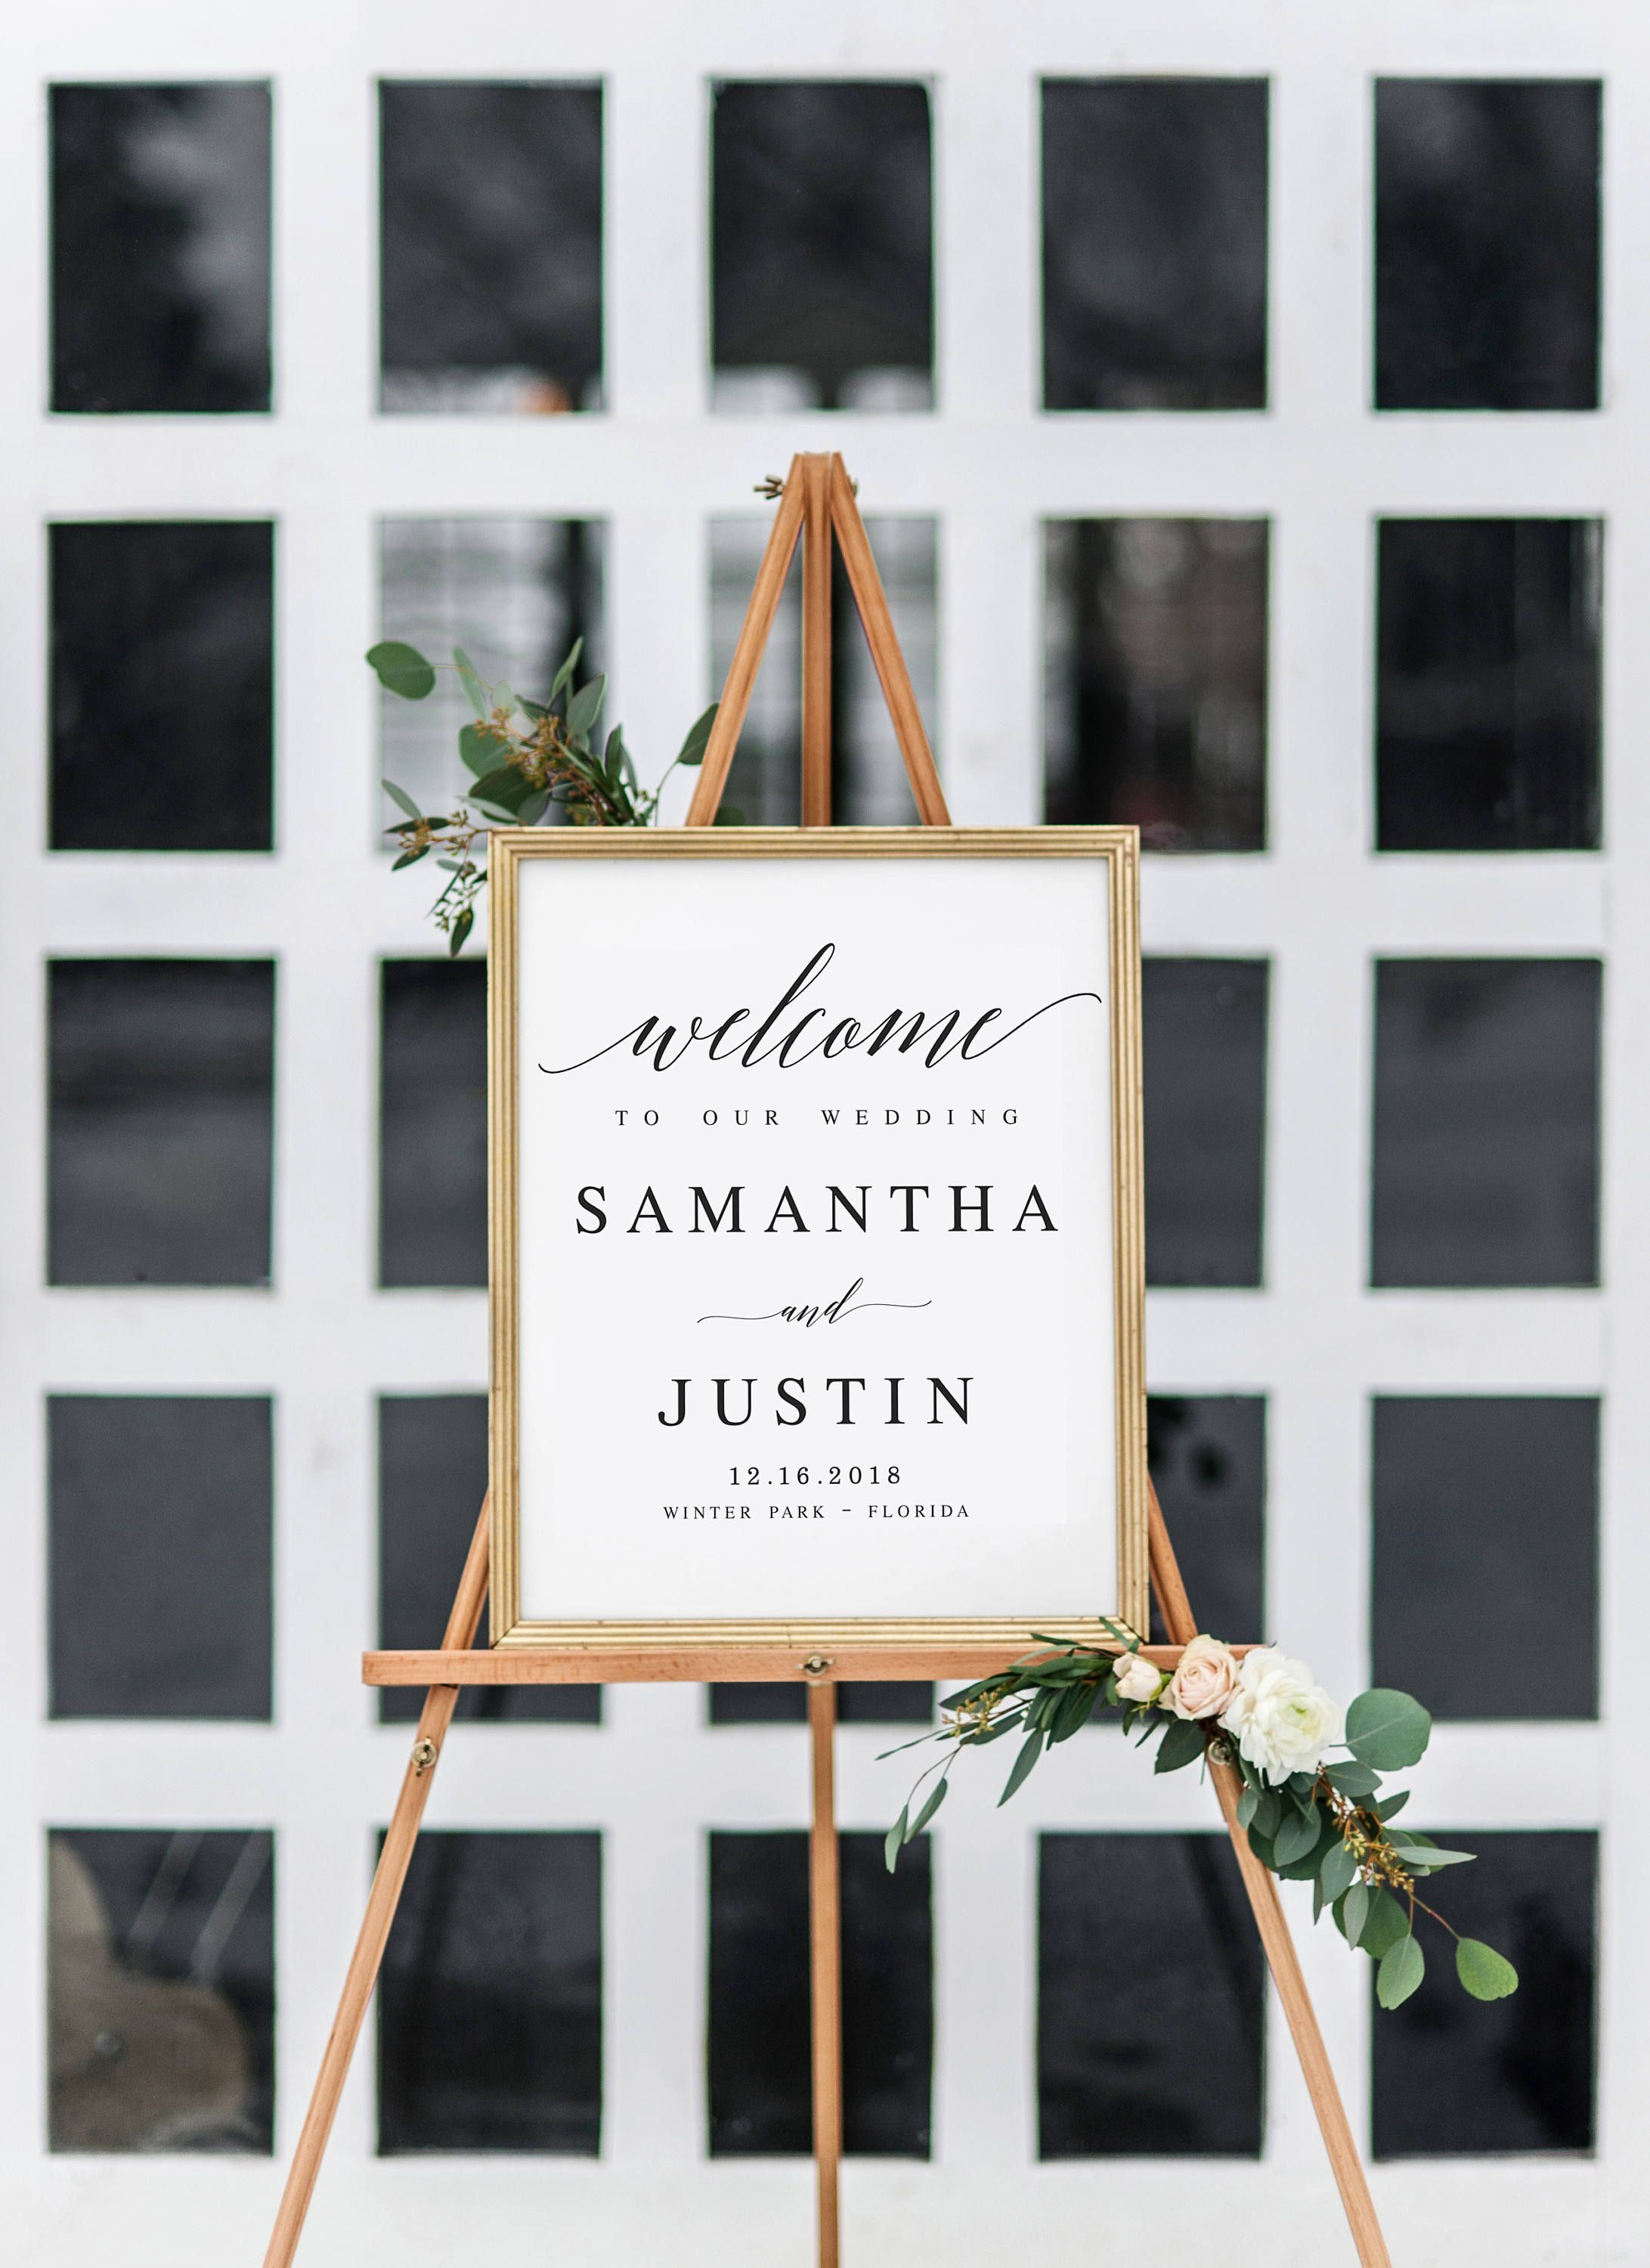 Print your own wedding welcome sign  Elegant Welcome to our